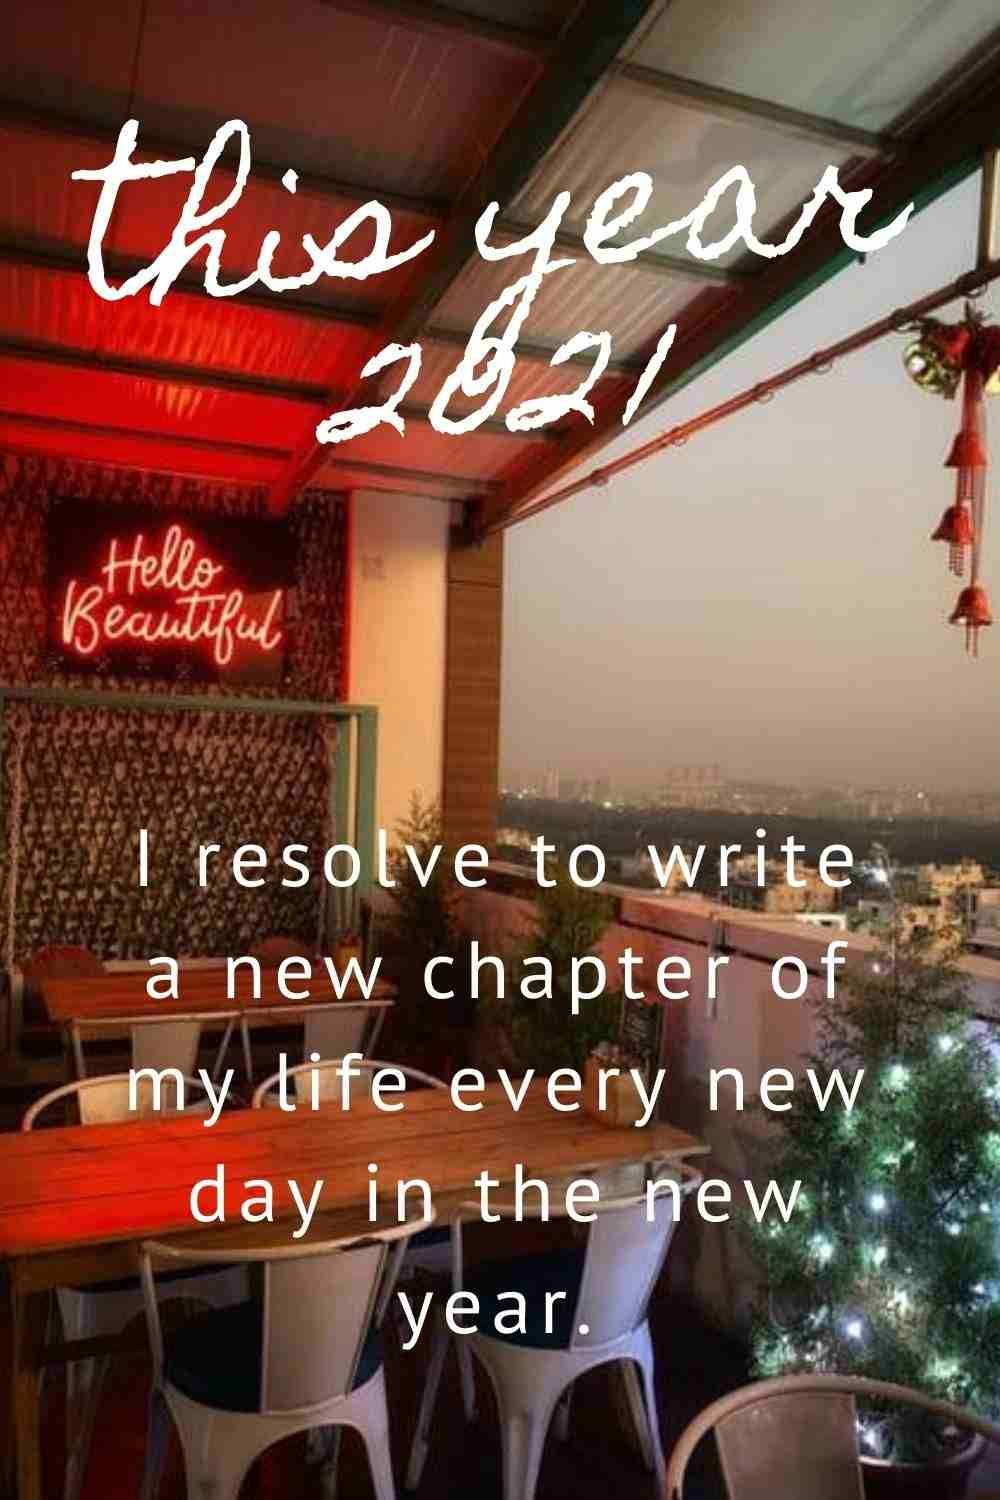 Happy new year sayings 2021 Messages in 2020 | Happy new year wishes, Happy new  year quotes, Quotes about new year